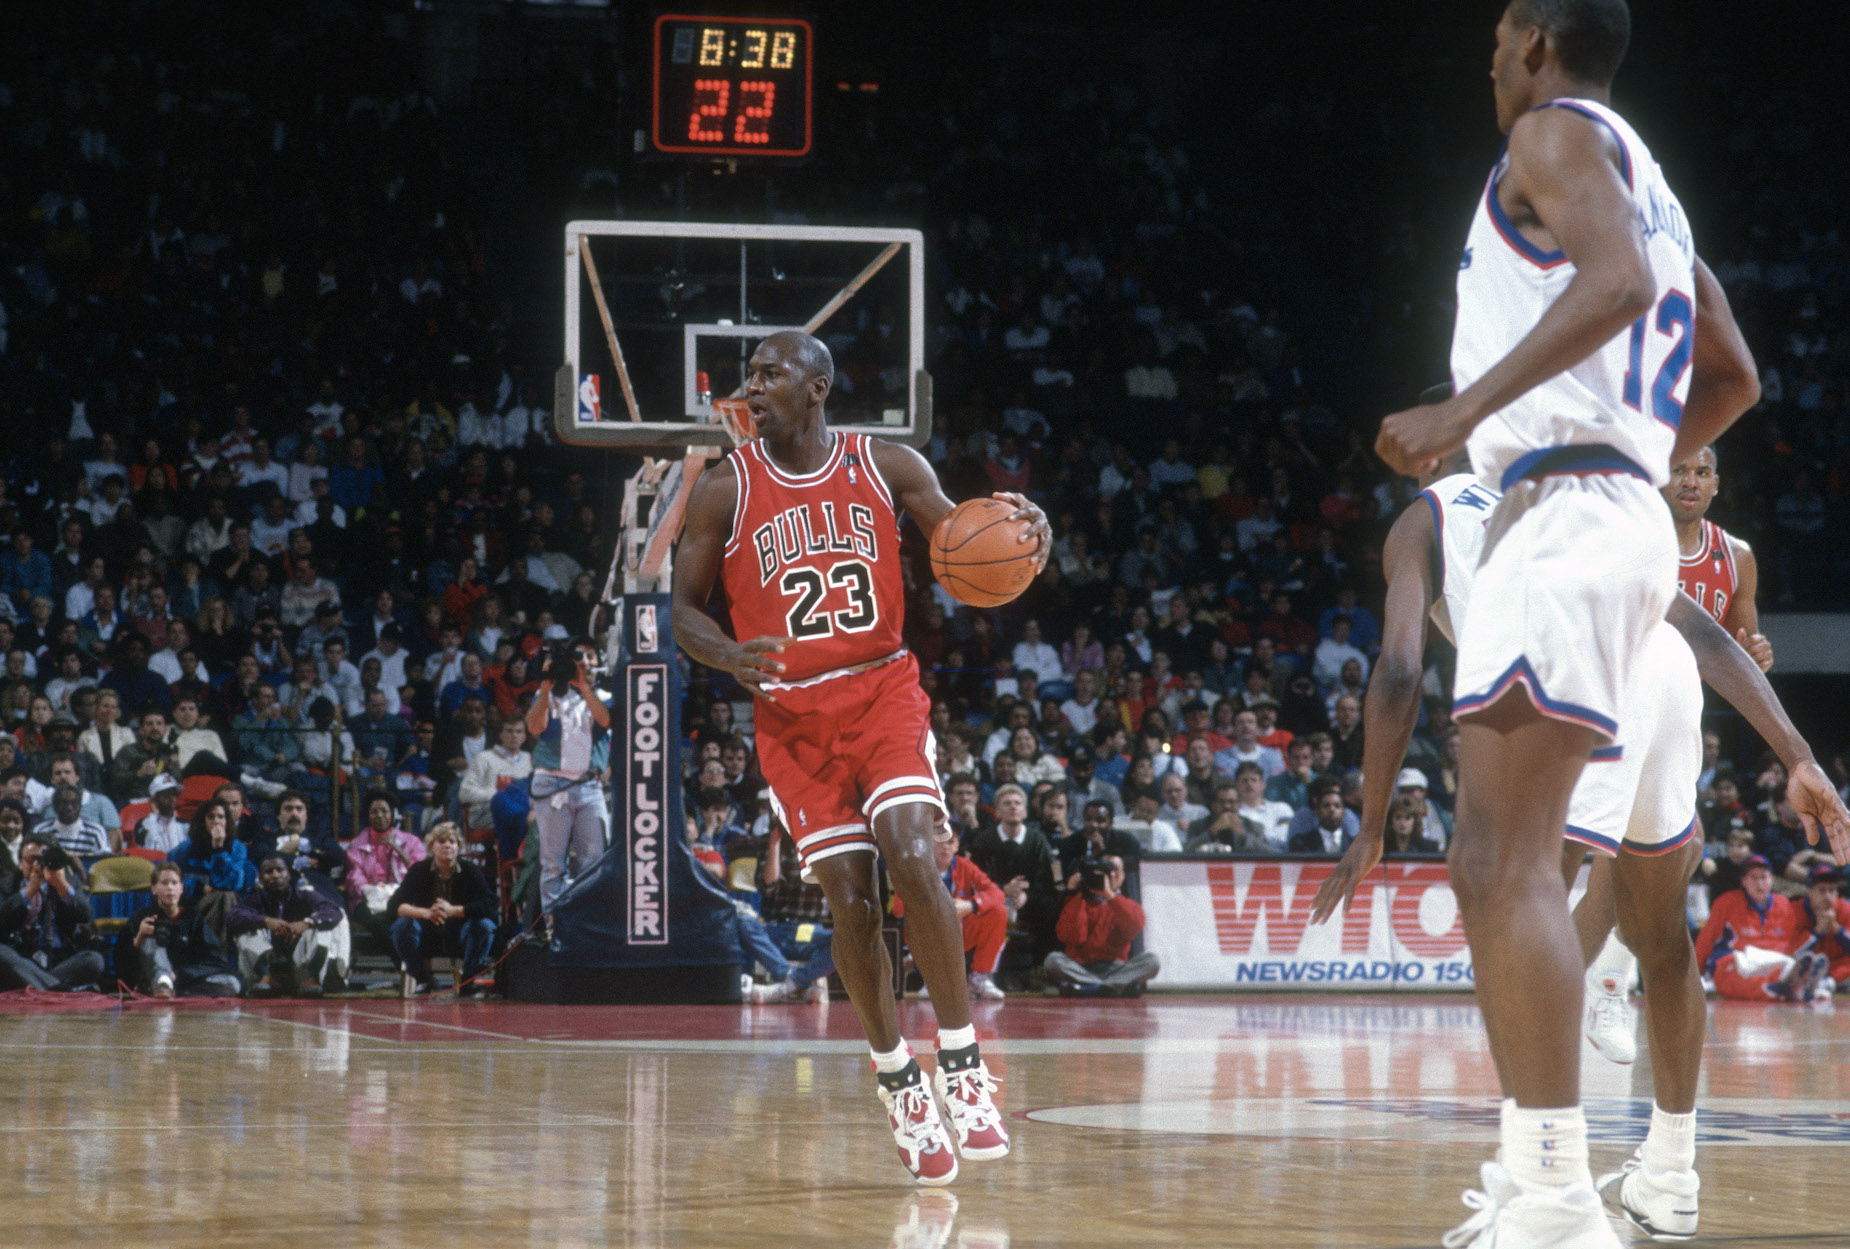 Michael Jordan dribbles down the court during a Chicago Bulls game.